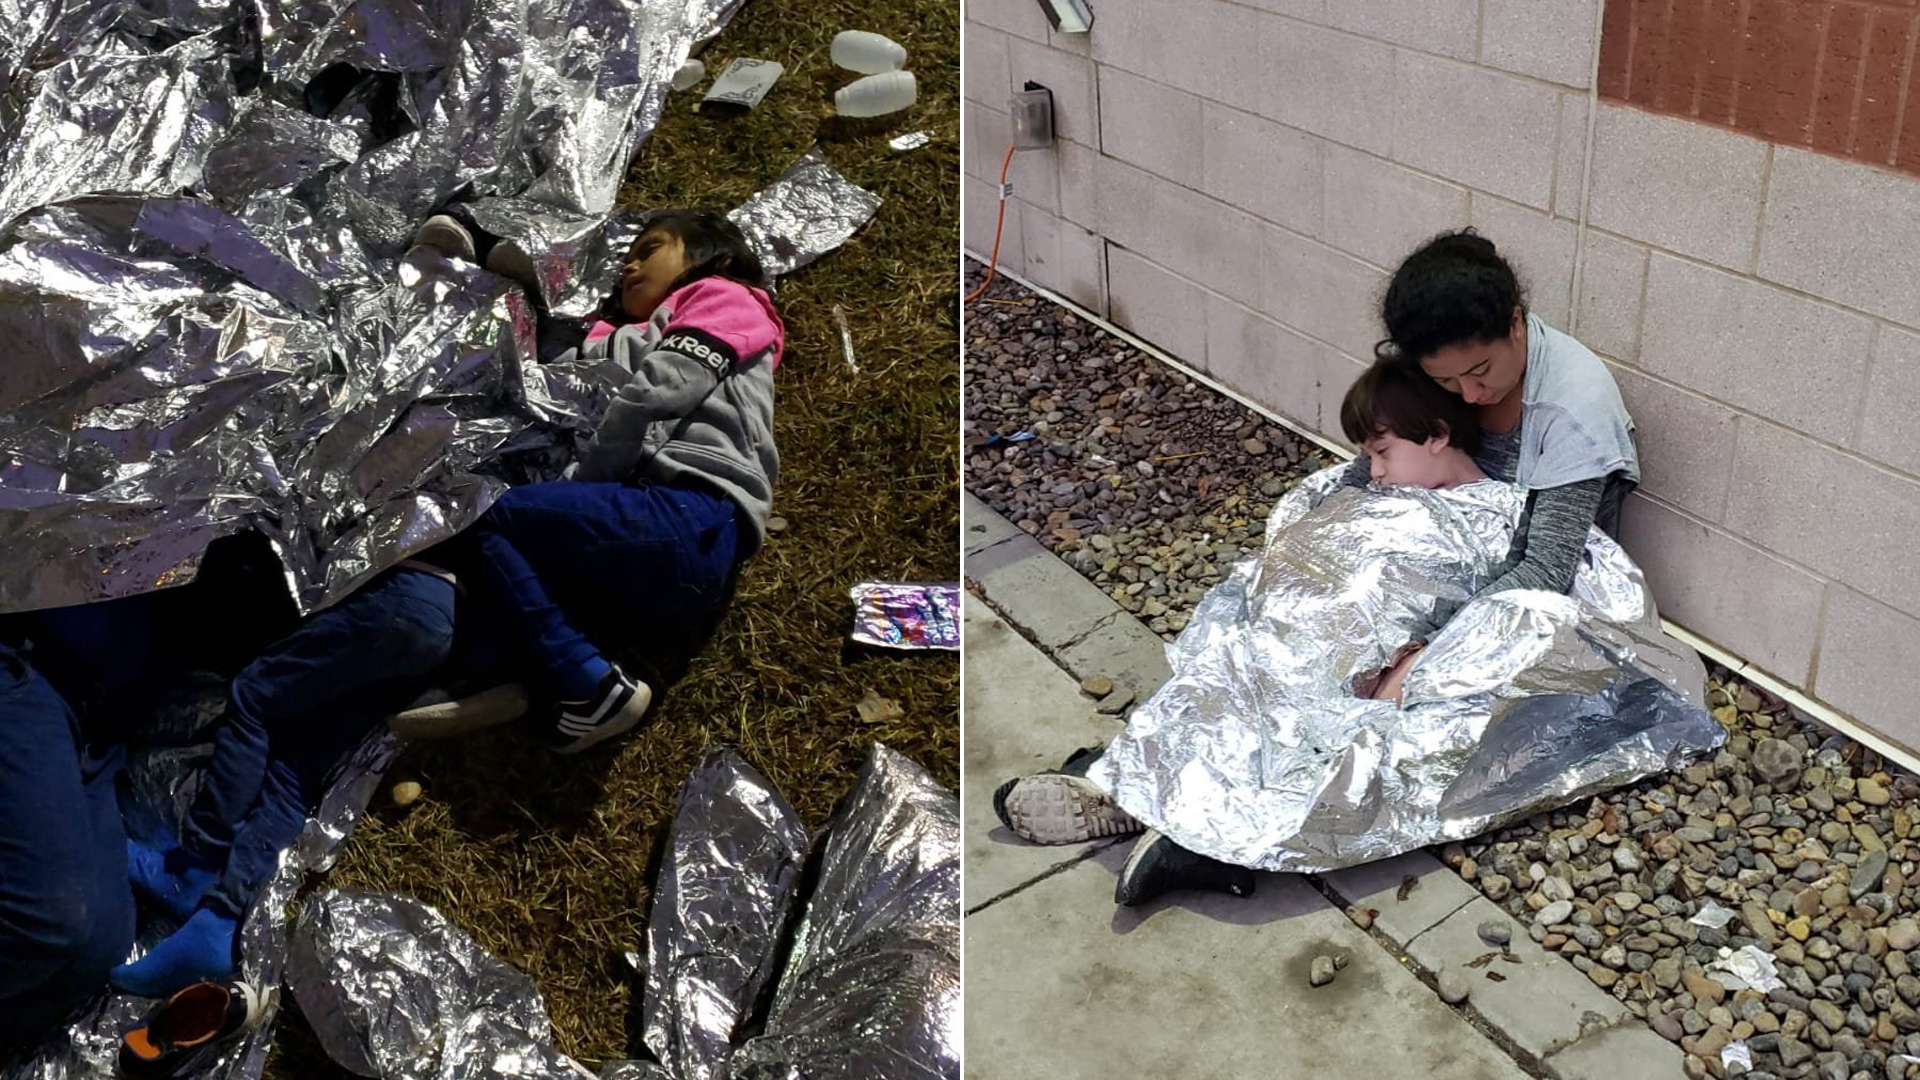 Photos taken of the Border Patrol station in McAllen, Texas, in May 2019. CNN obtained the photos from a source.